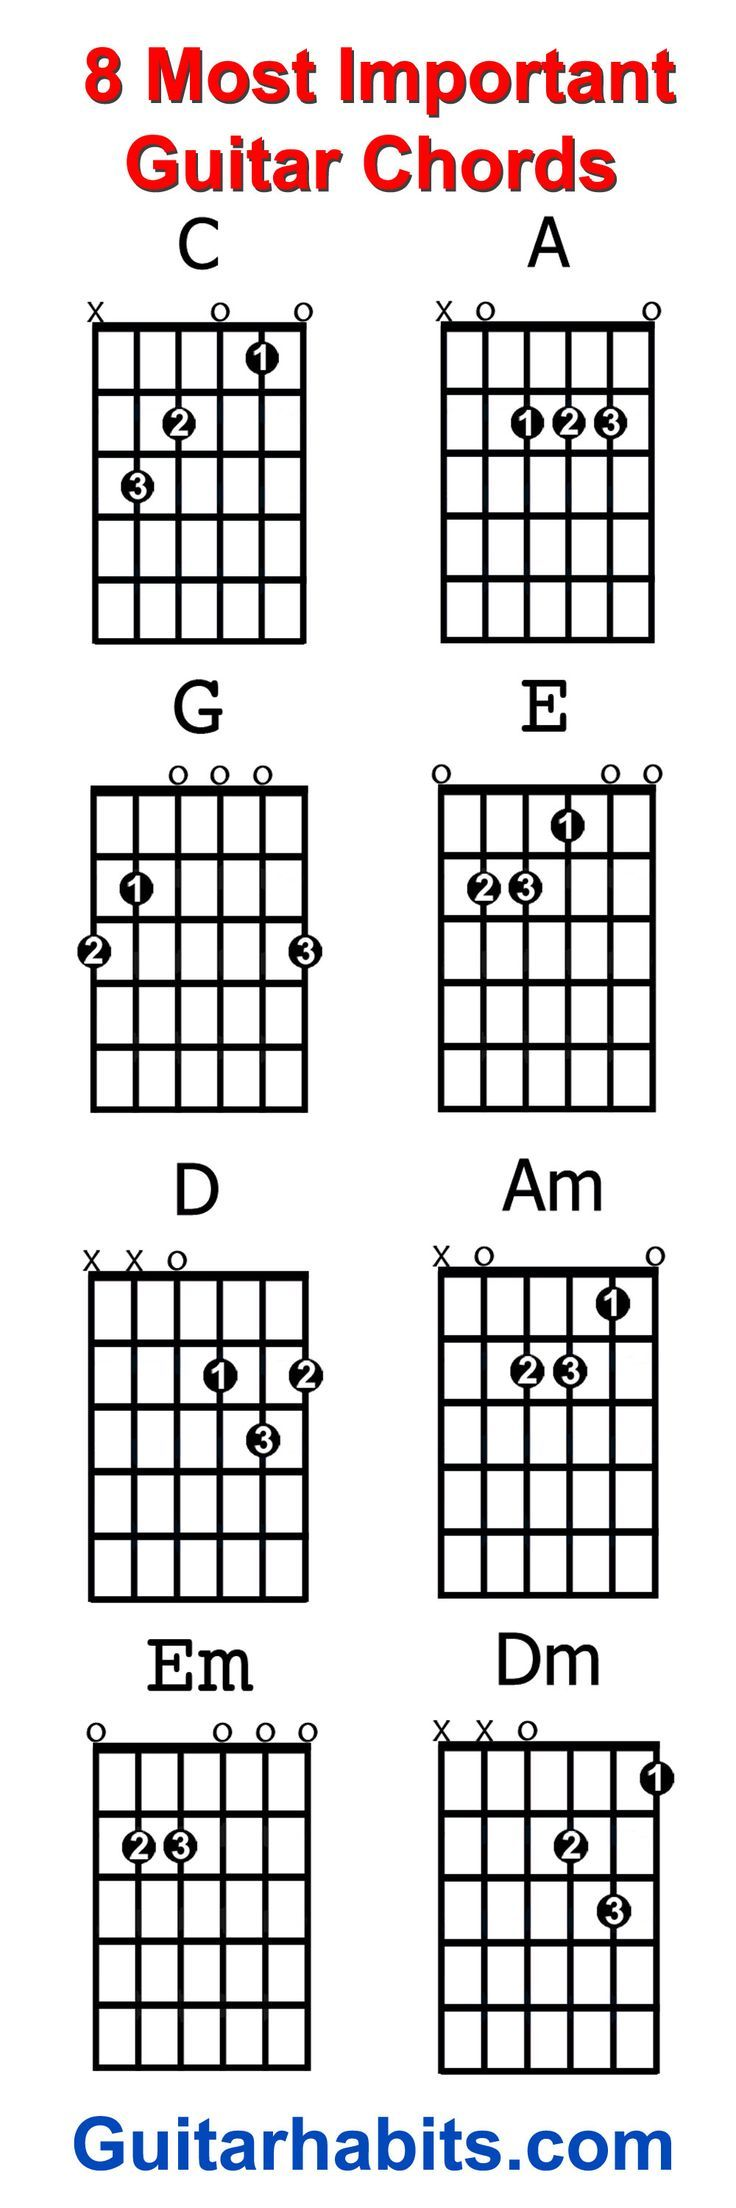 All Guitar Chords Chart: Find Any Chord, Play Any Song